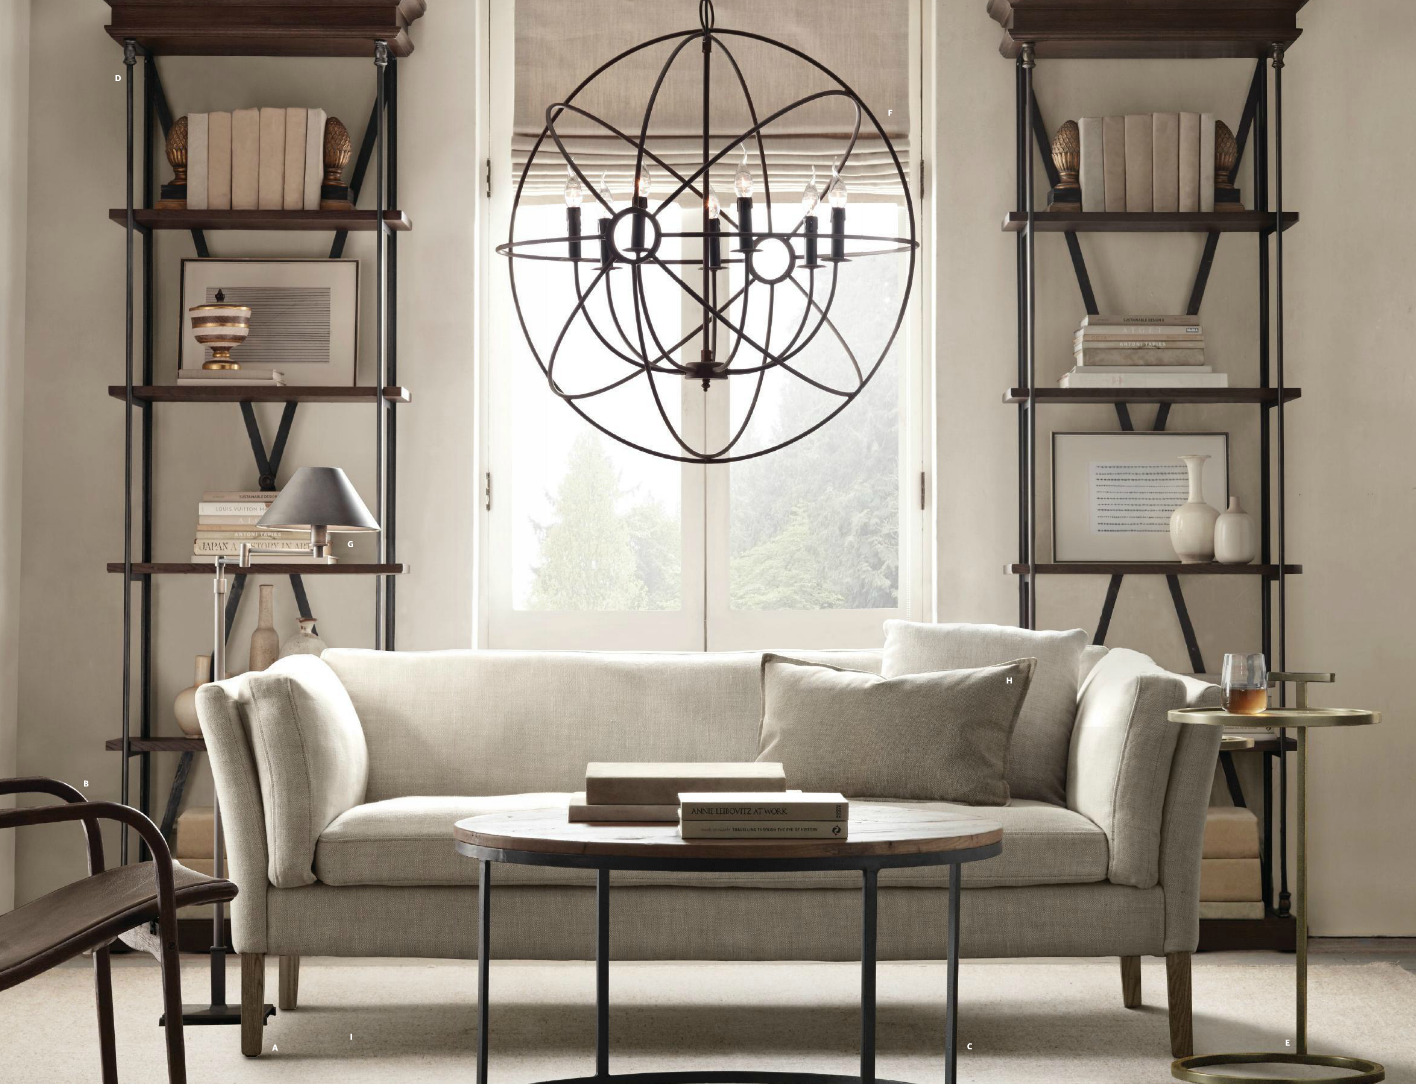 Living Room Designs For Small Spaces 2013 restoration hardware - small spaces inspiration | ideas for